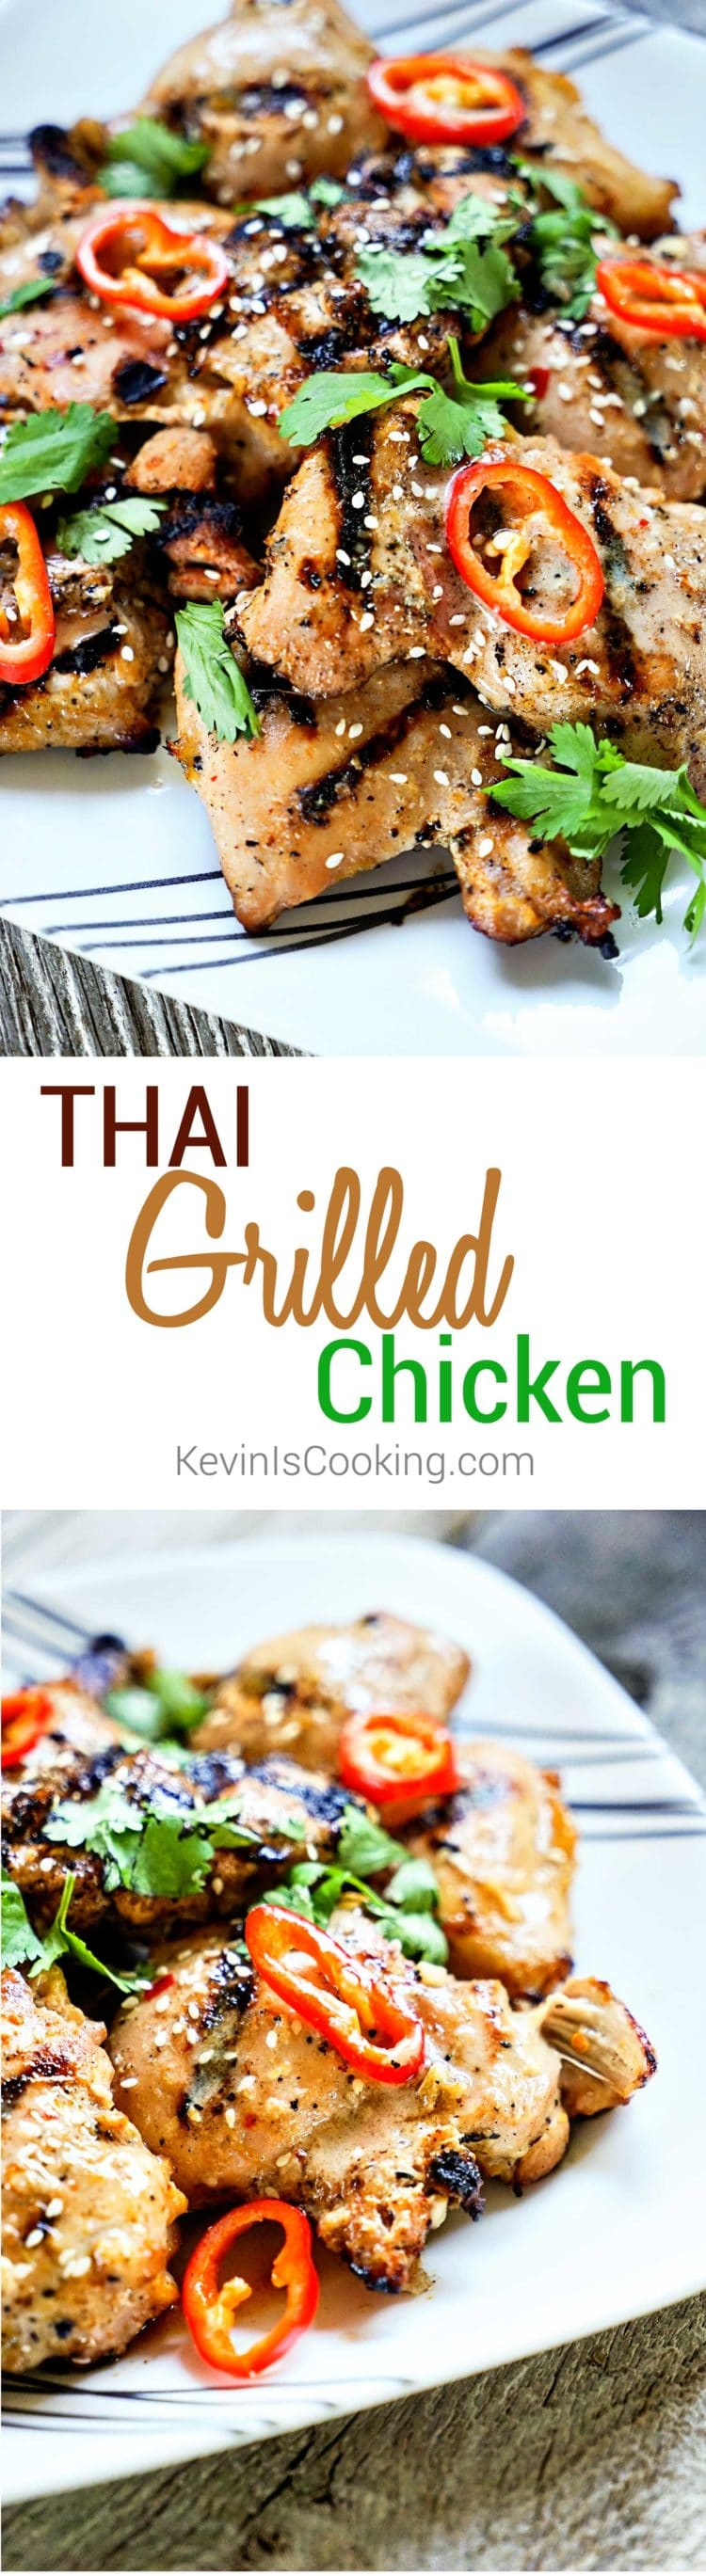 Tasty, authentic Thai street food anyone? This Amazing Thai Grilled Chicken delivers BIG time on flavor using fresh lemongrass and fish sauce in the marinade. So good!